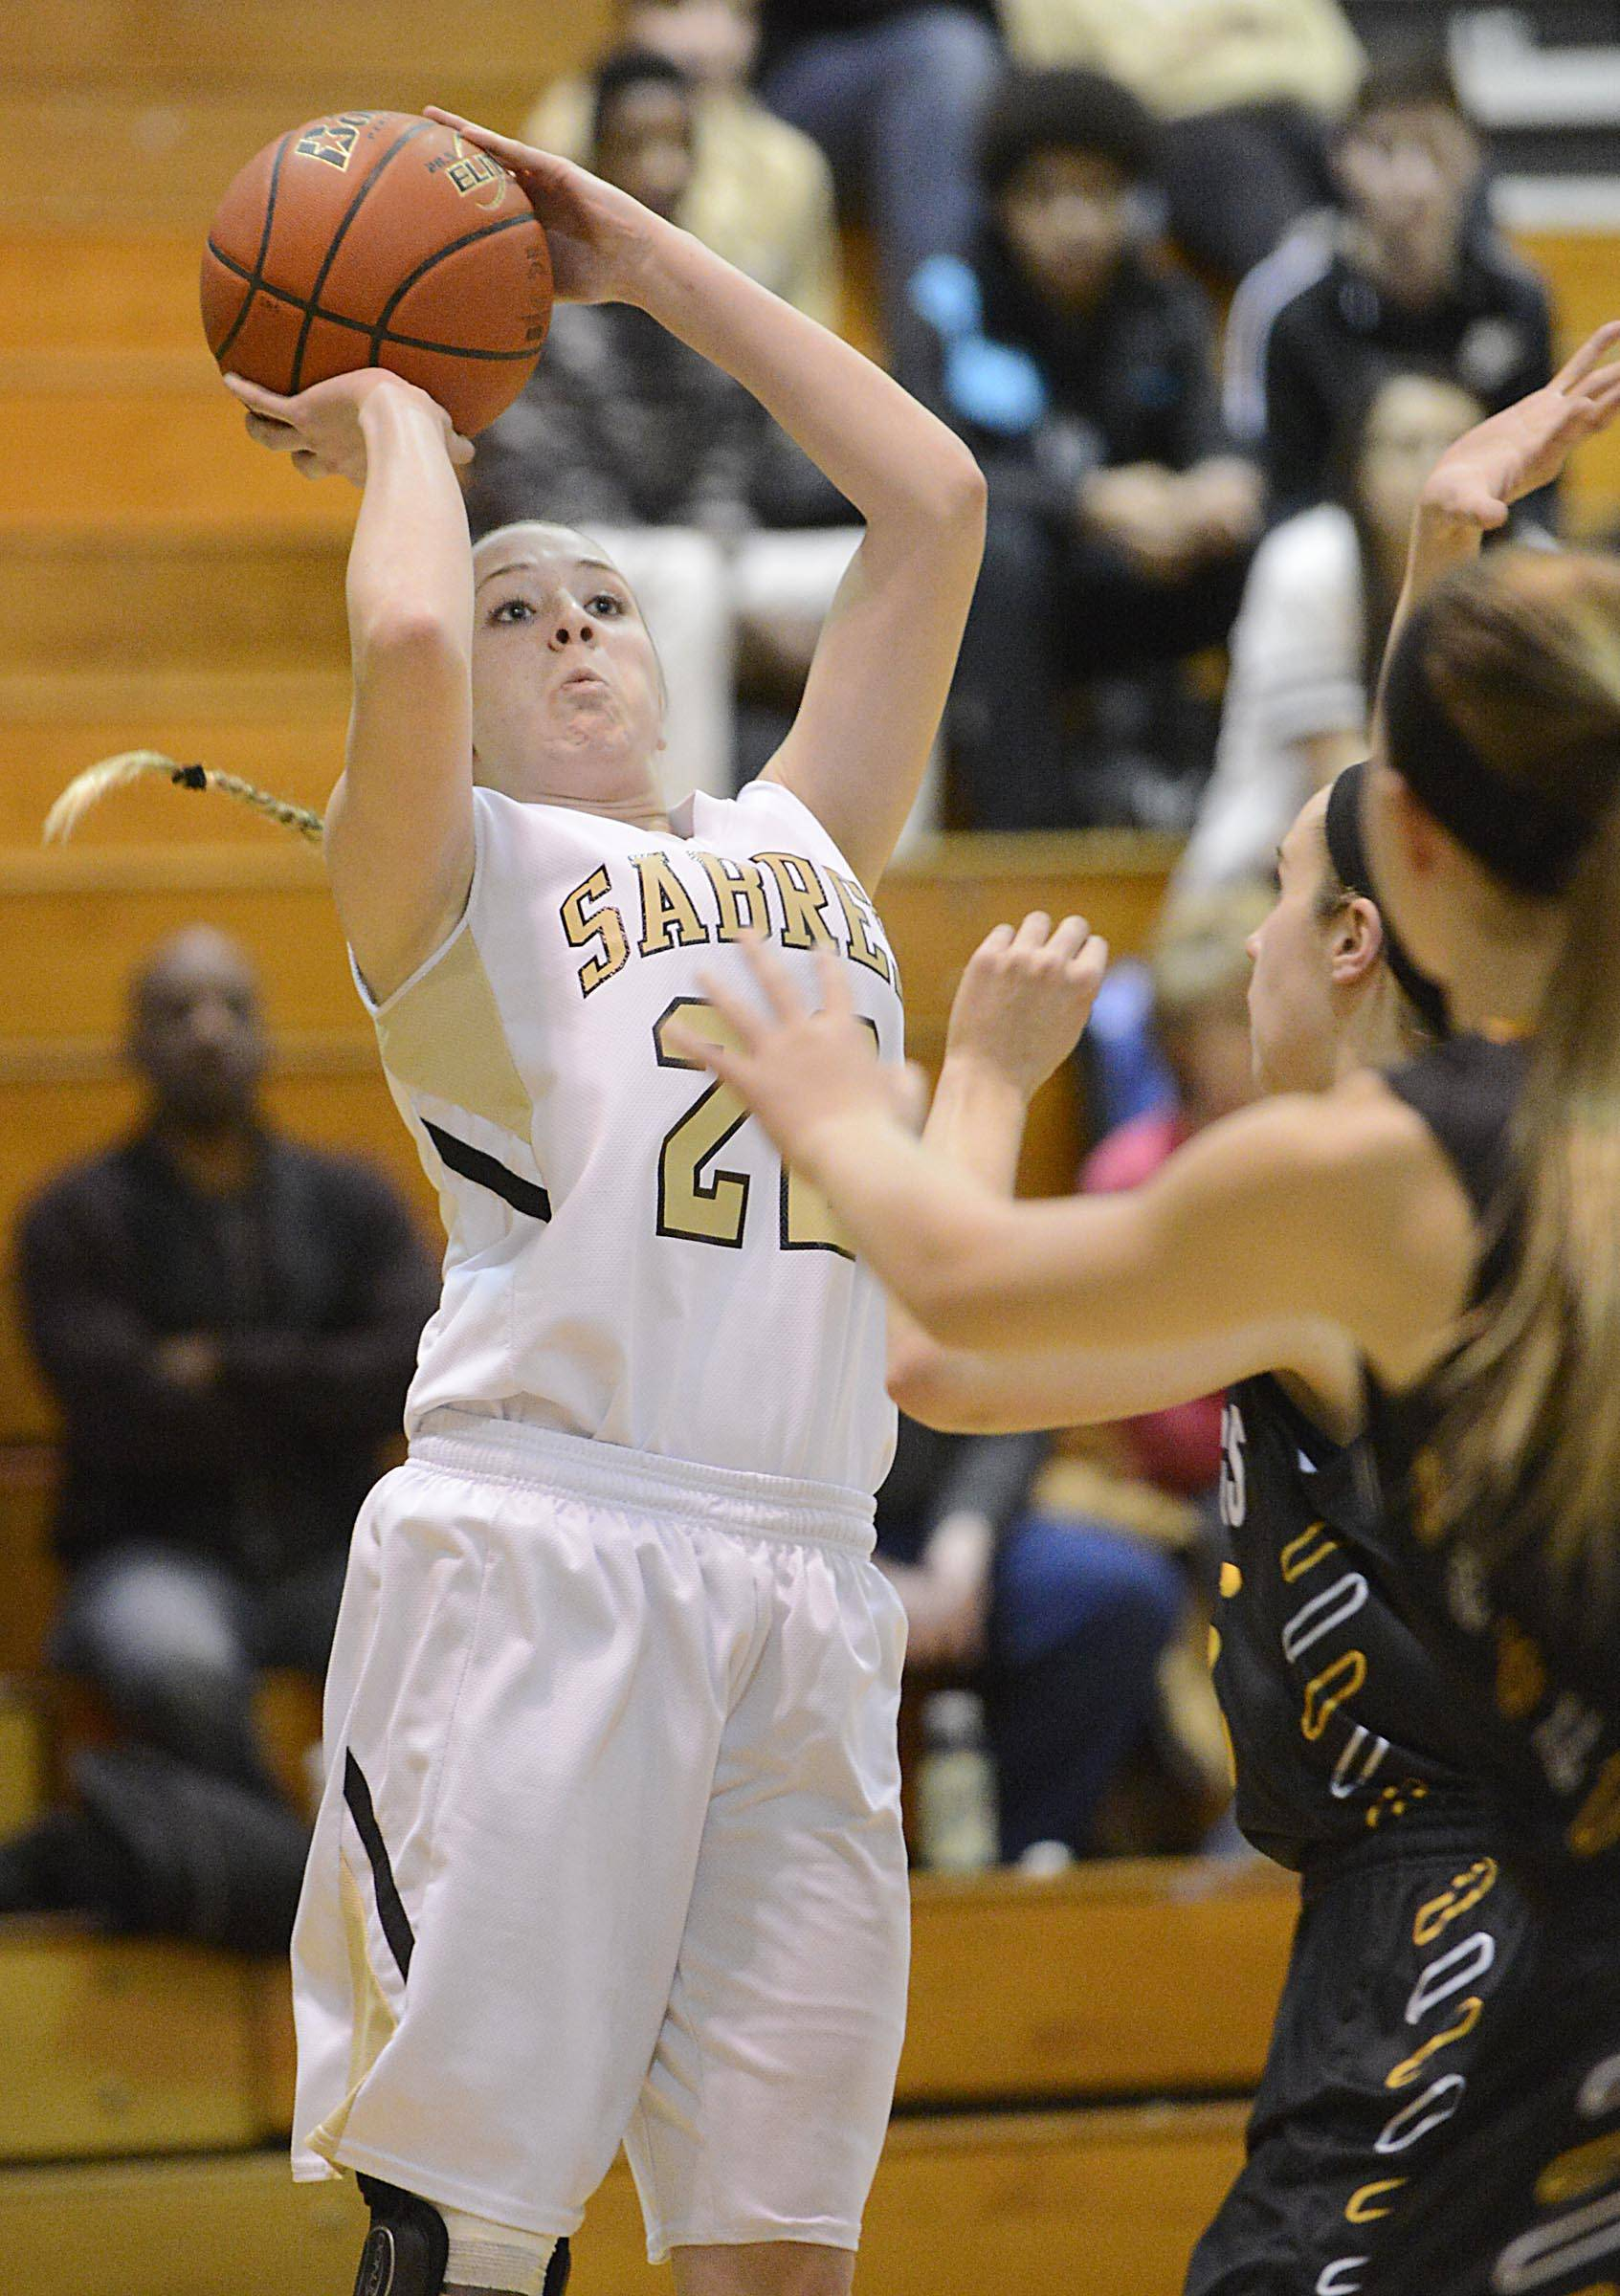 Streamwood's Holly Foret shoots a three-point shot against Metea Valley.